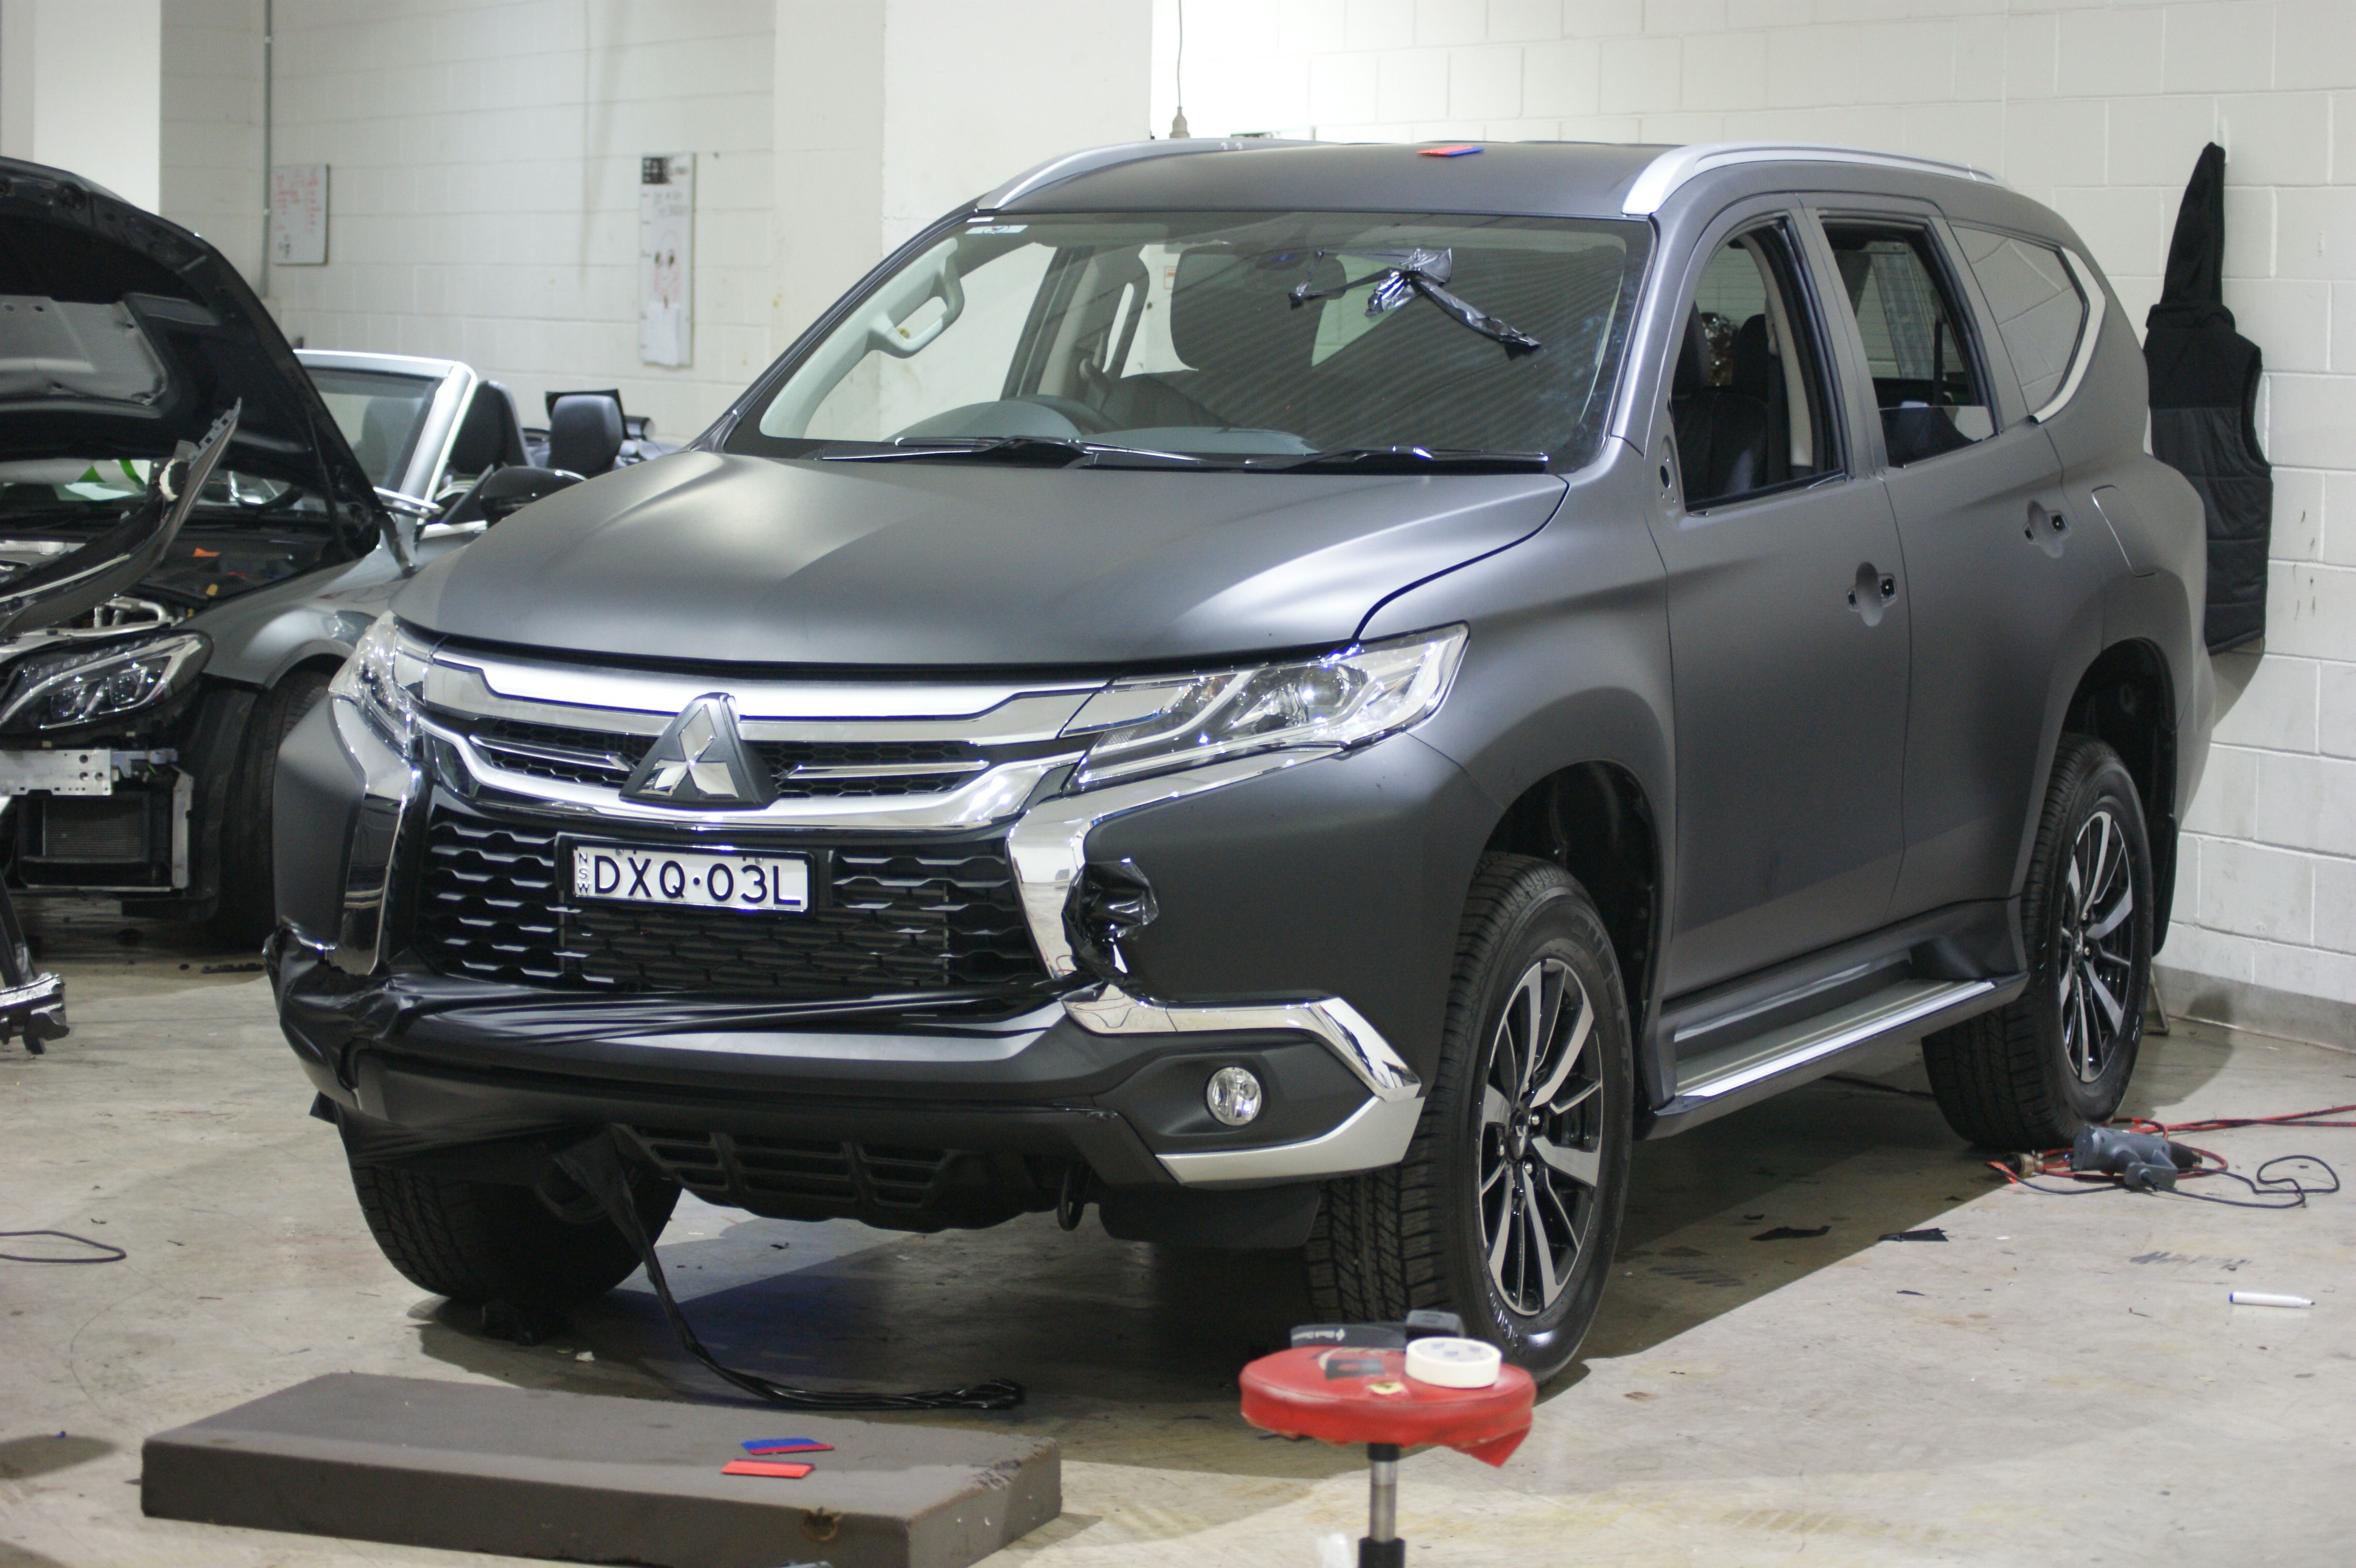 Stunning Mitsubishi Pajero Sport Being Wrapped In Matte Black To Give It A Standout Look On The Road Mitsubishi Pajero Sport Car Wrap Mitsubishi Pajero